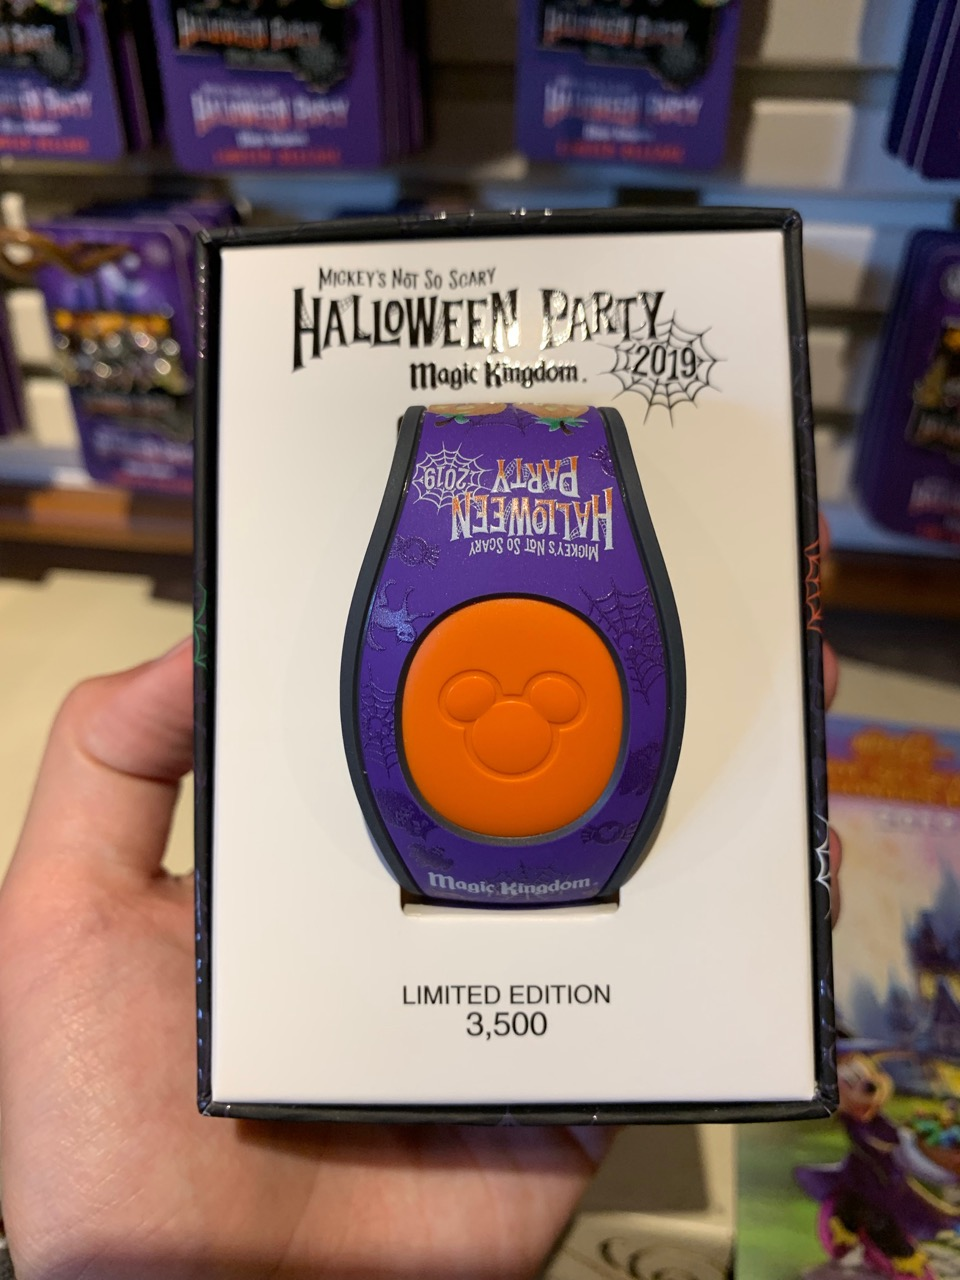 mickeys not so scary halloween party 2019 merchandise 15.jpeg